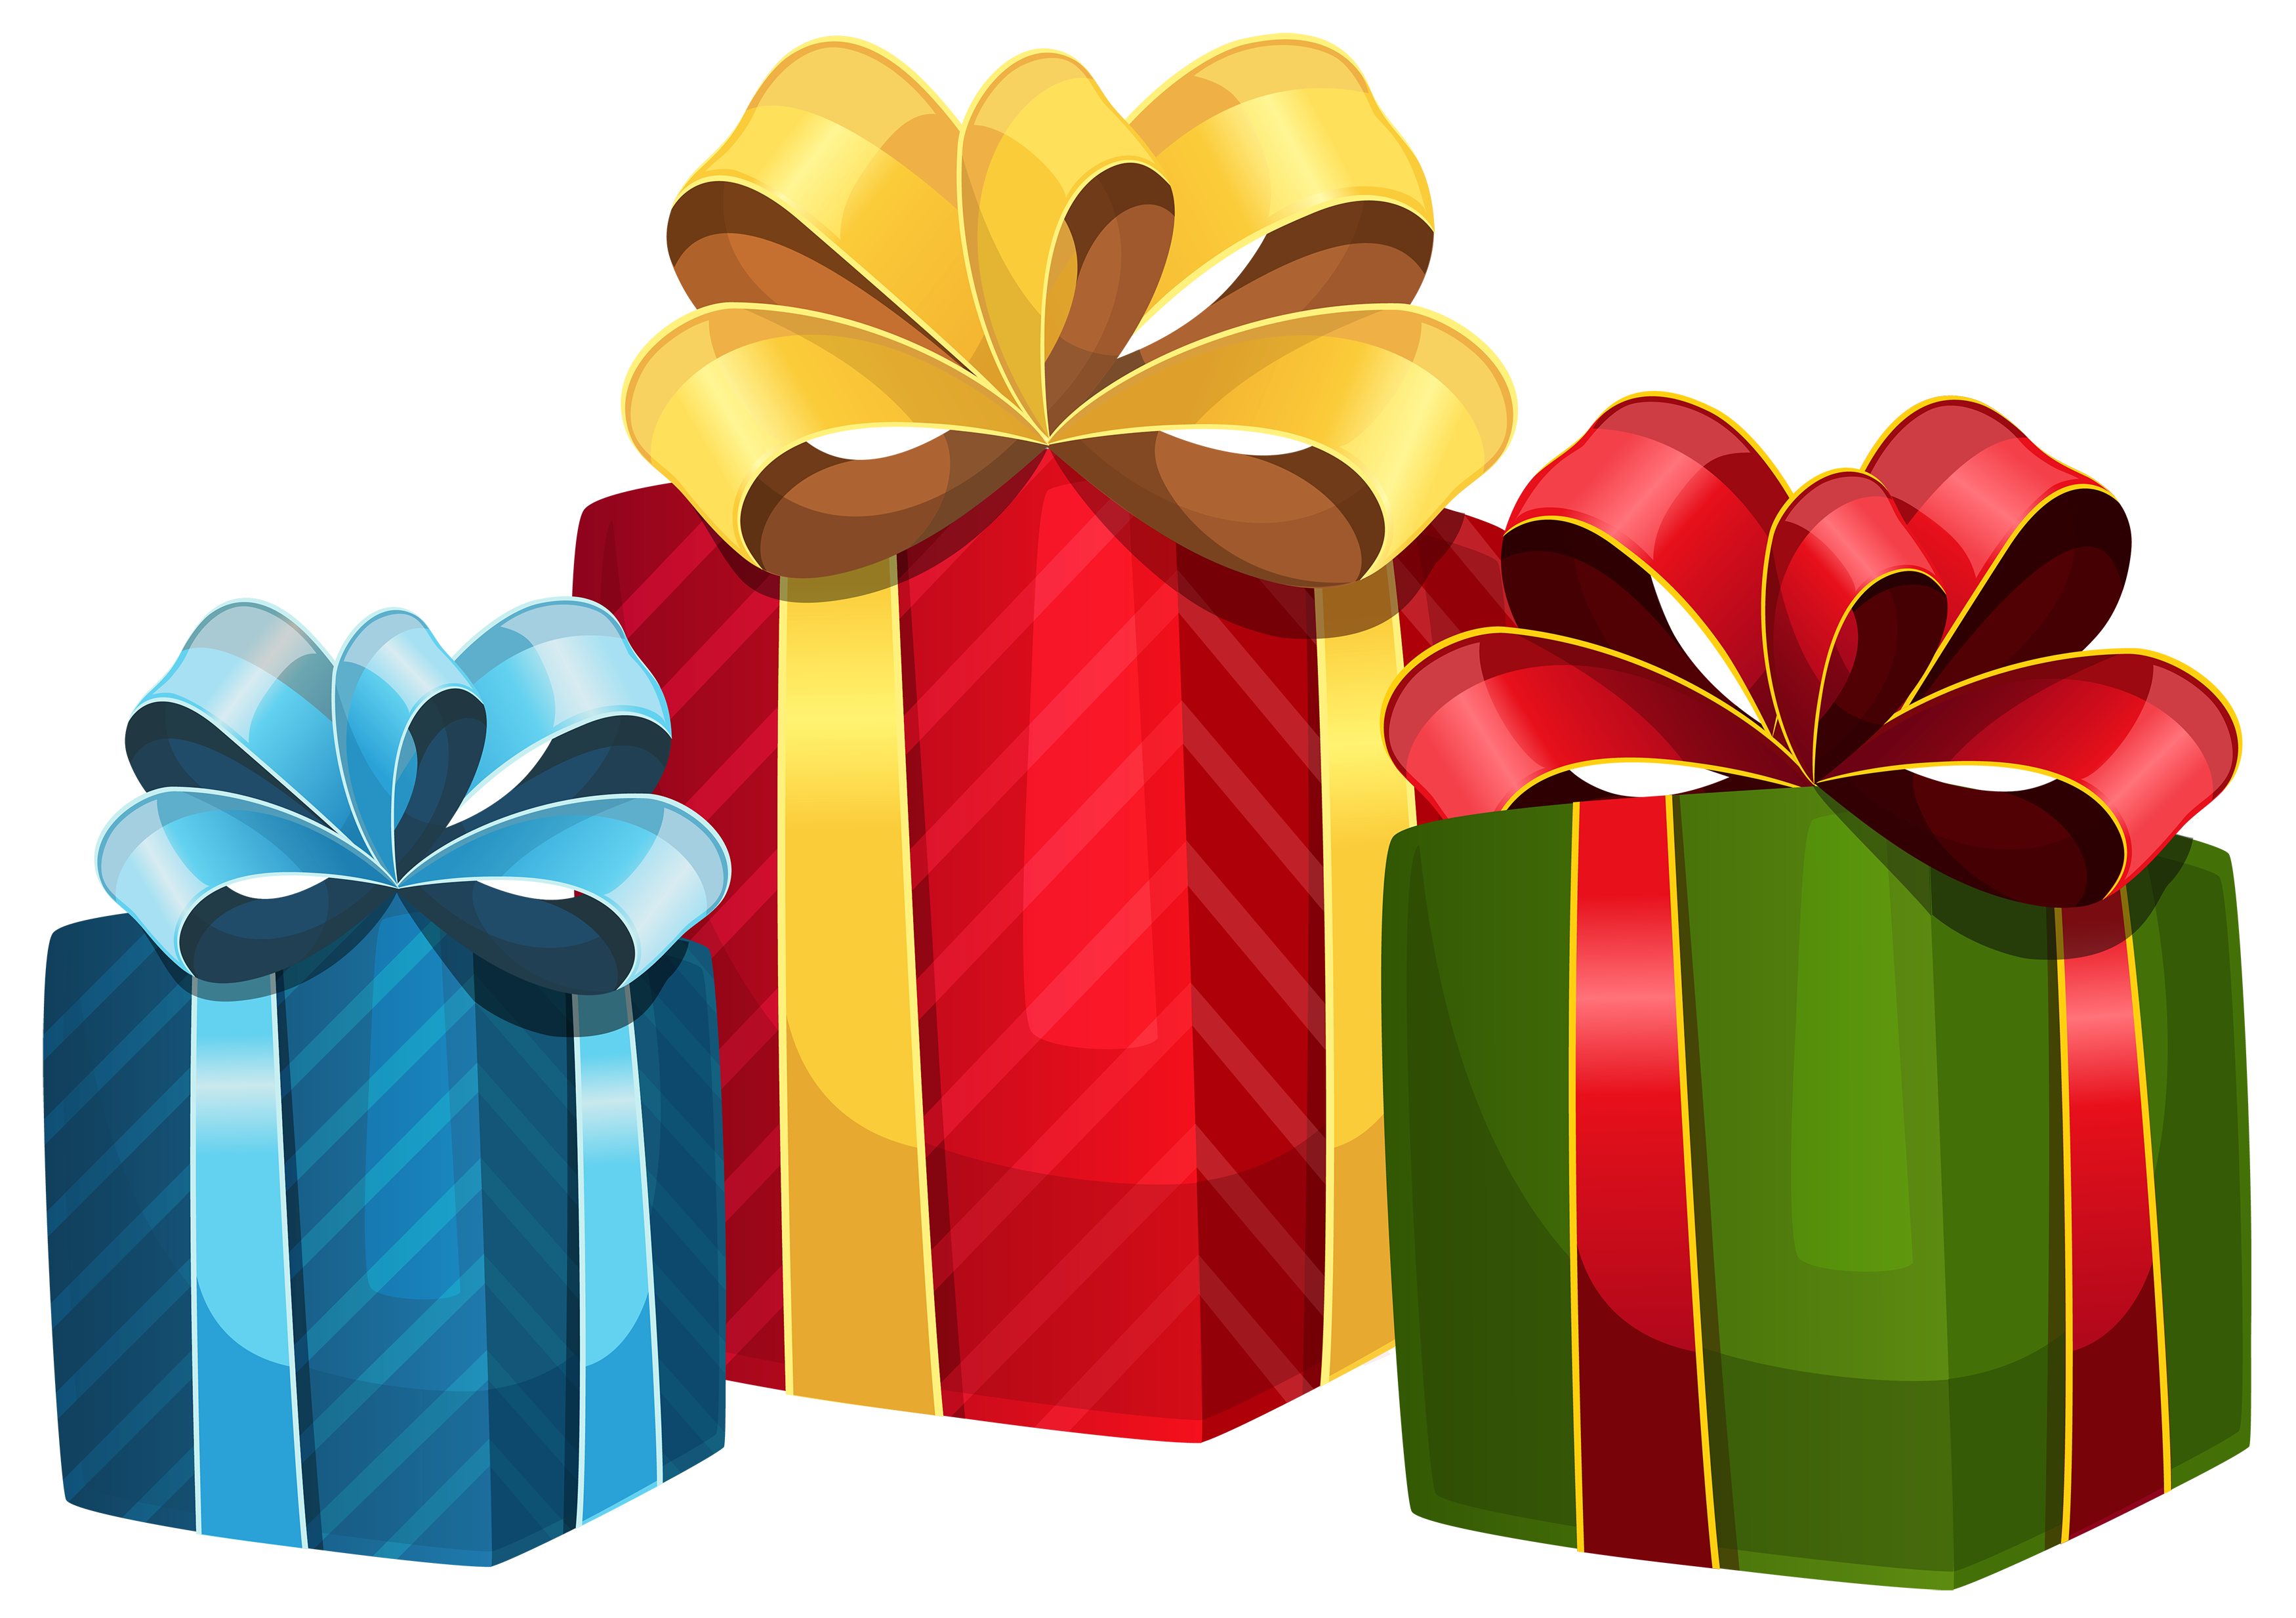 Gifts clipart. Colorful gift boxes png